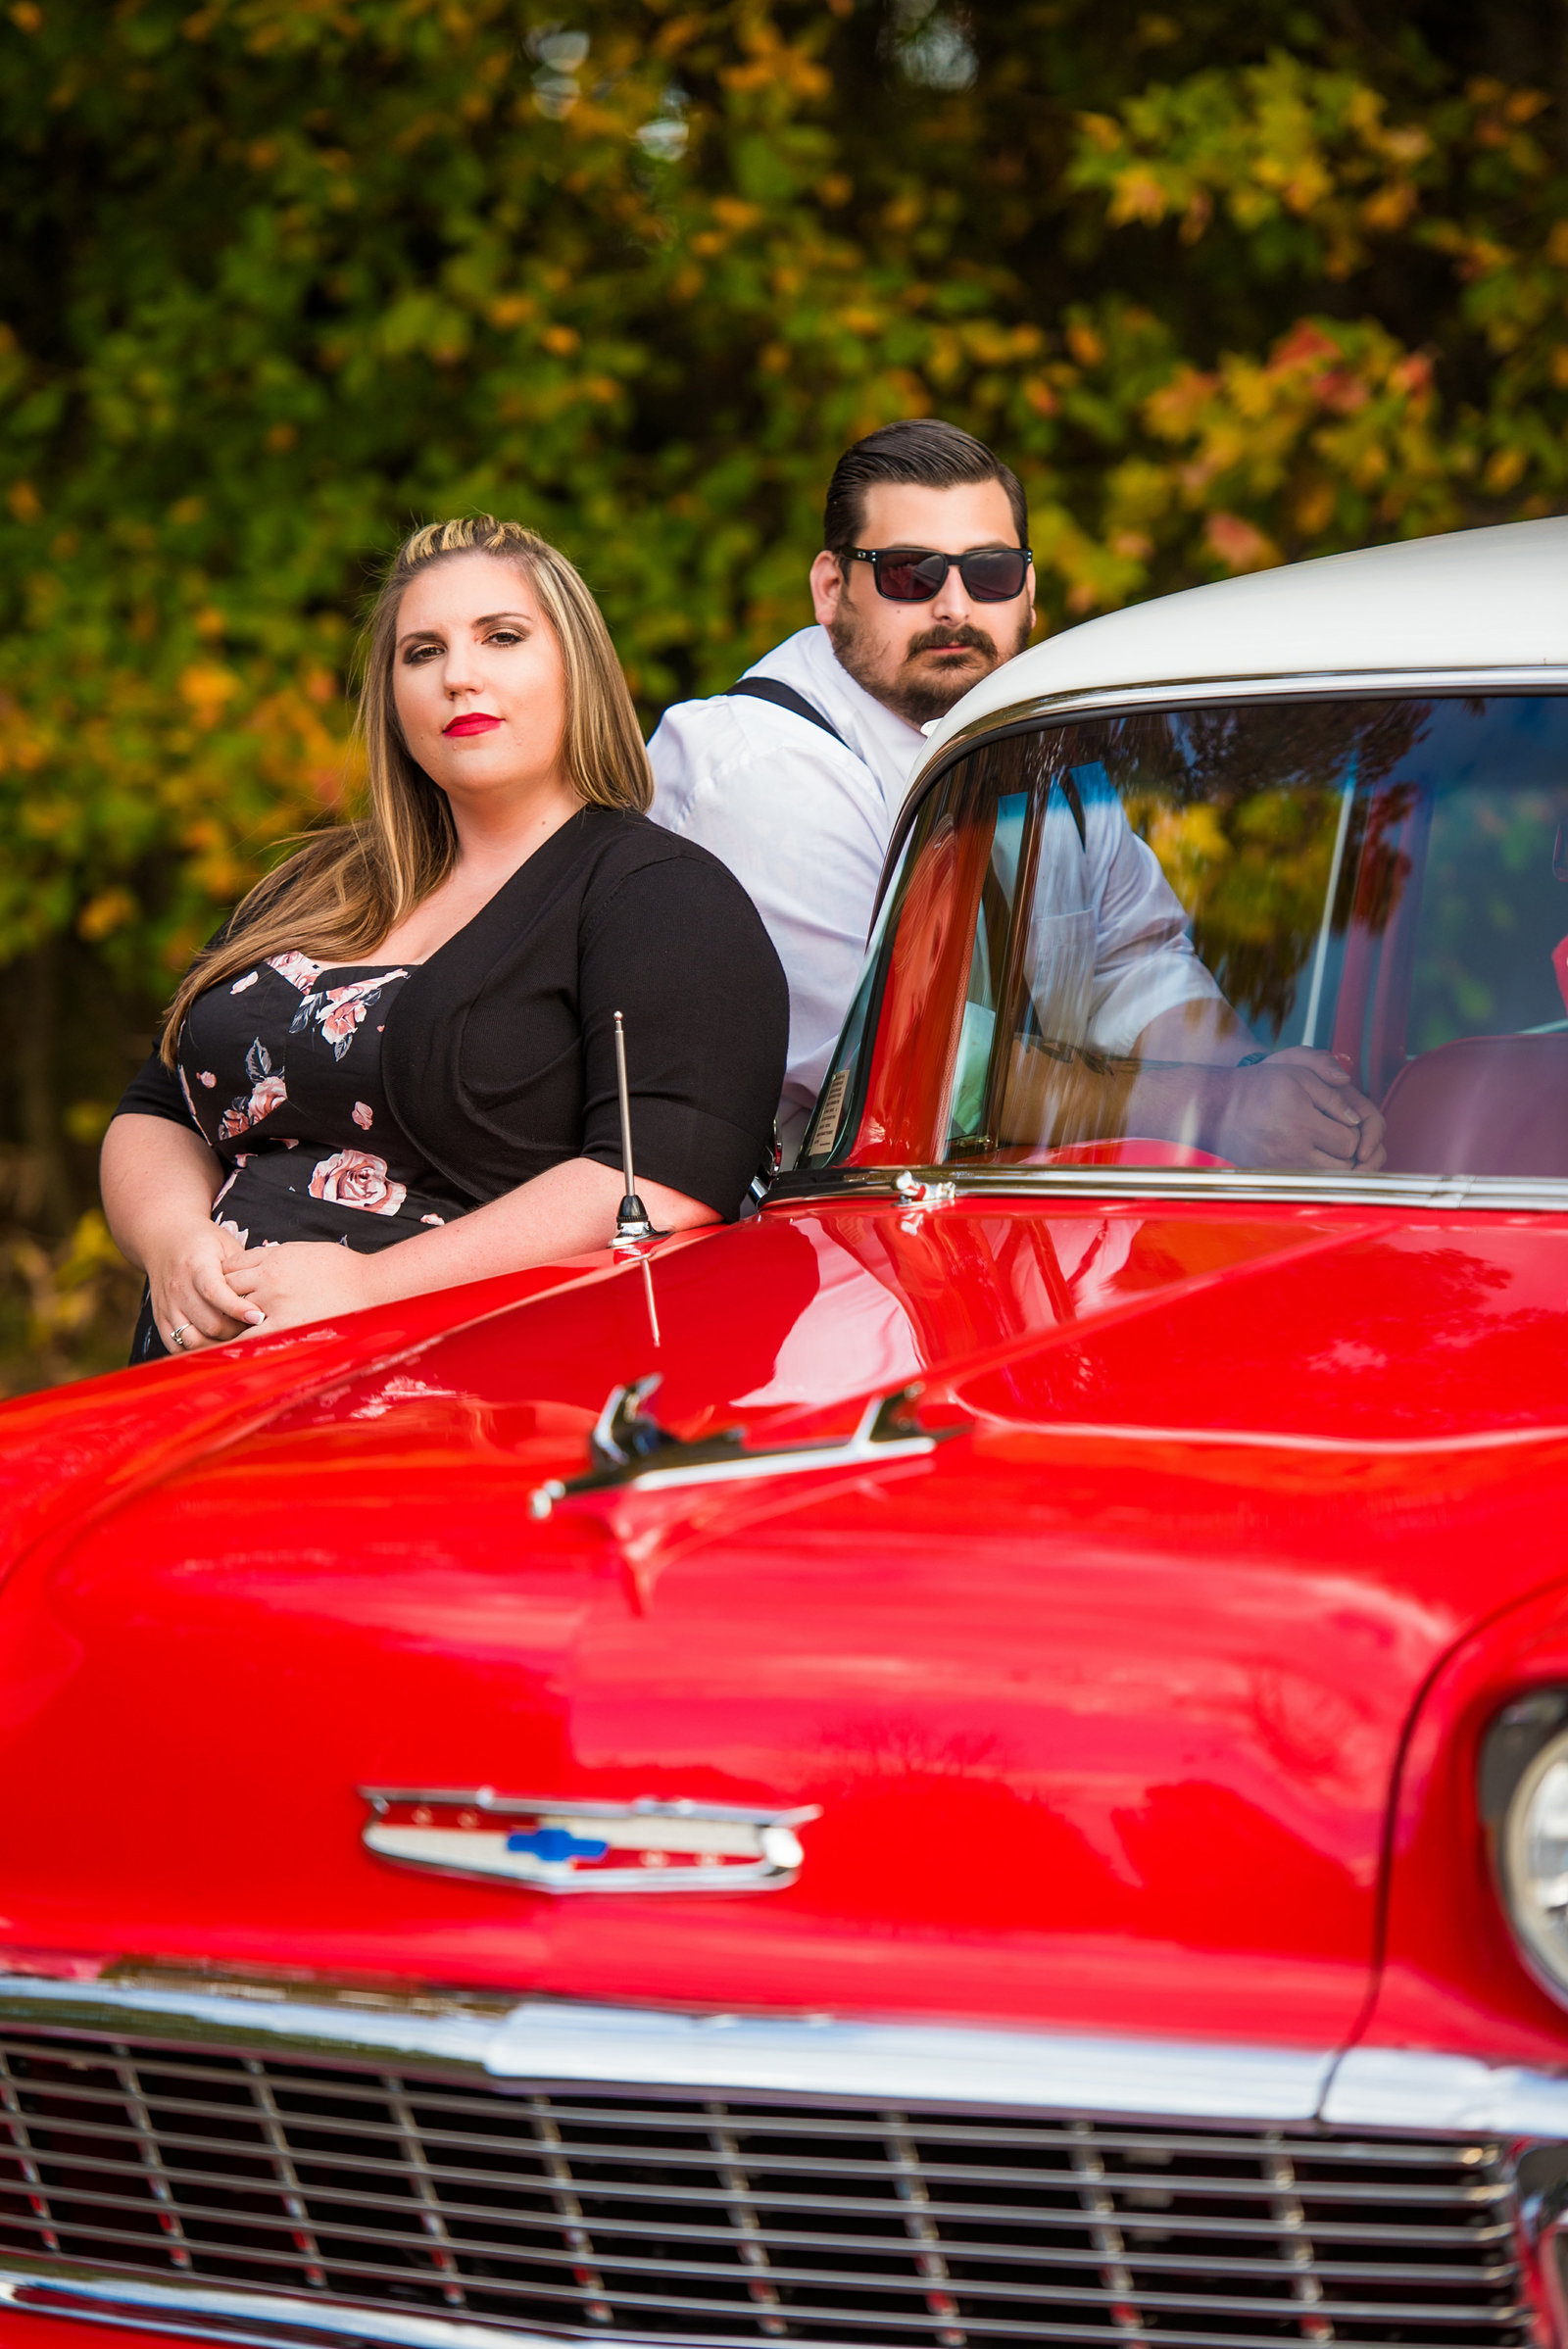 Retro_Pinup_Car_engagement_session_Nj090